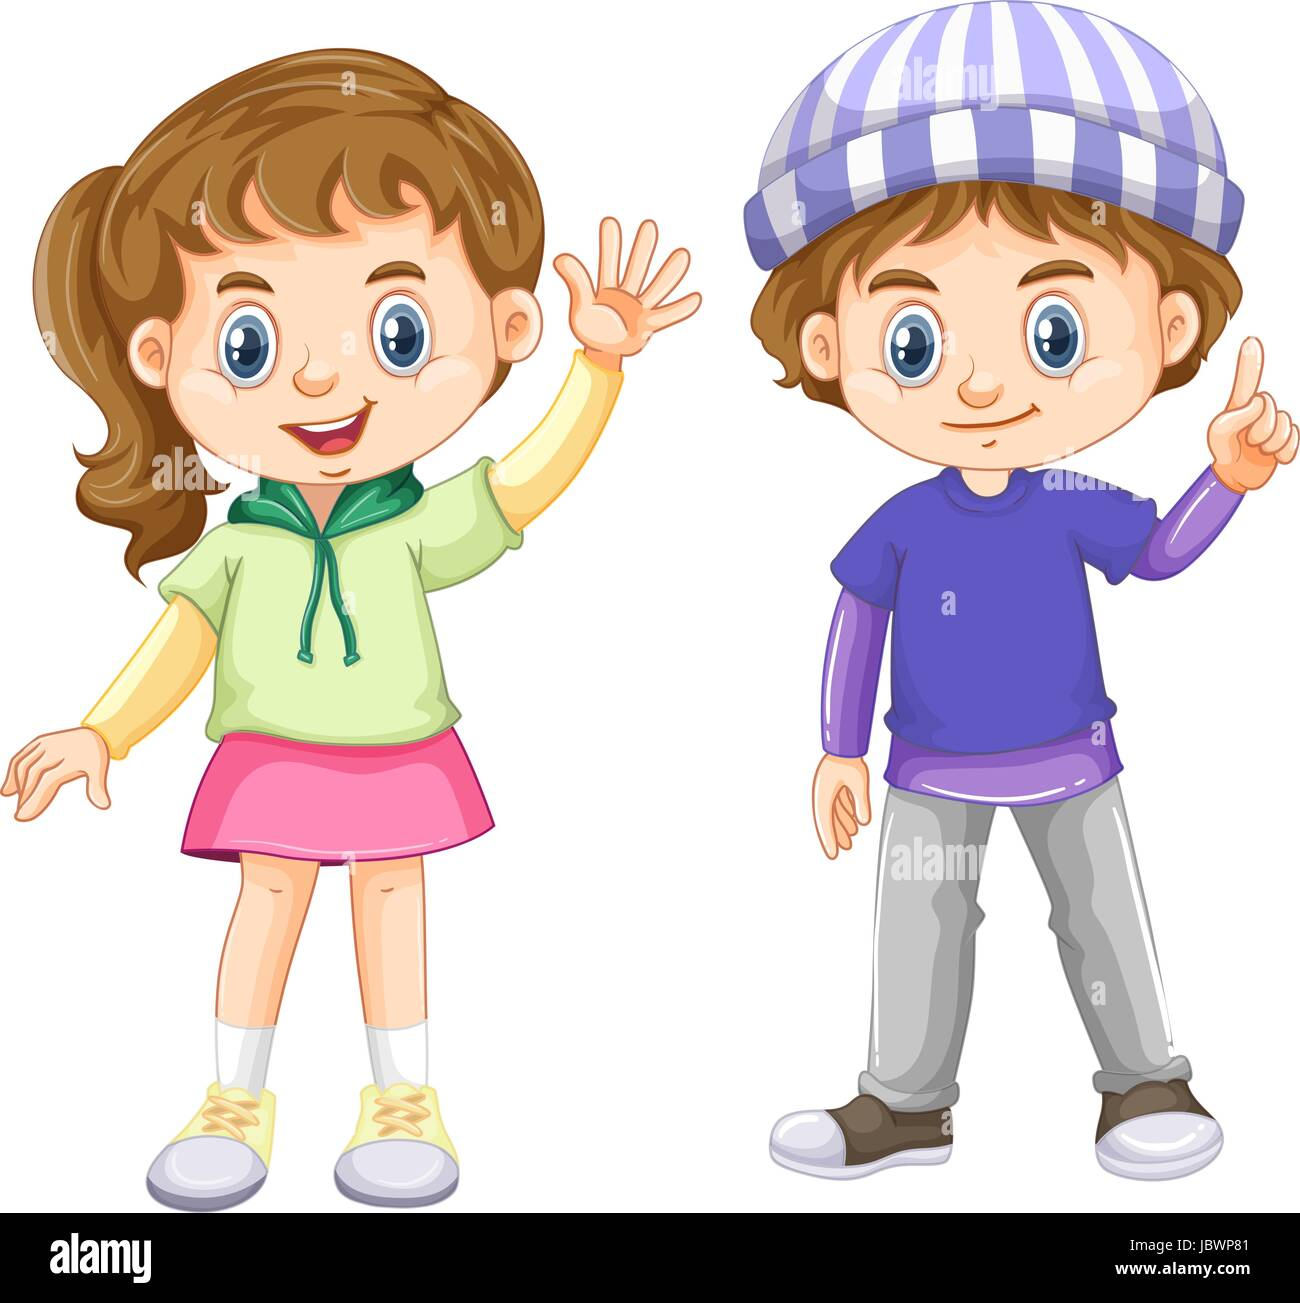 Cute Boy And Girl With Happy Face Illustration Stock